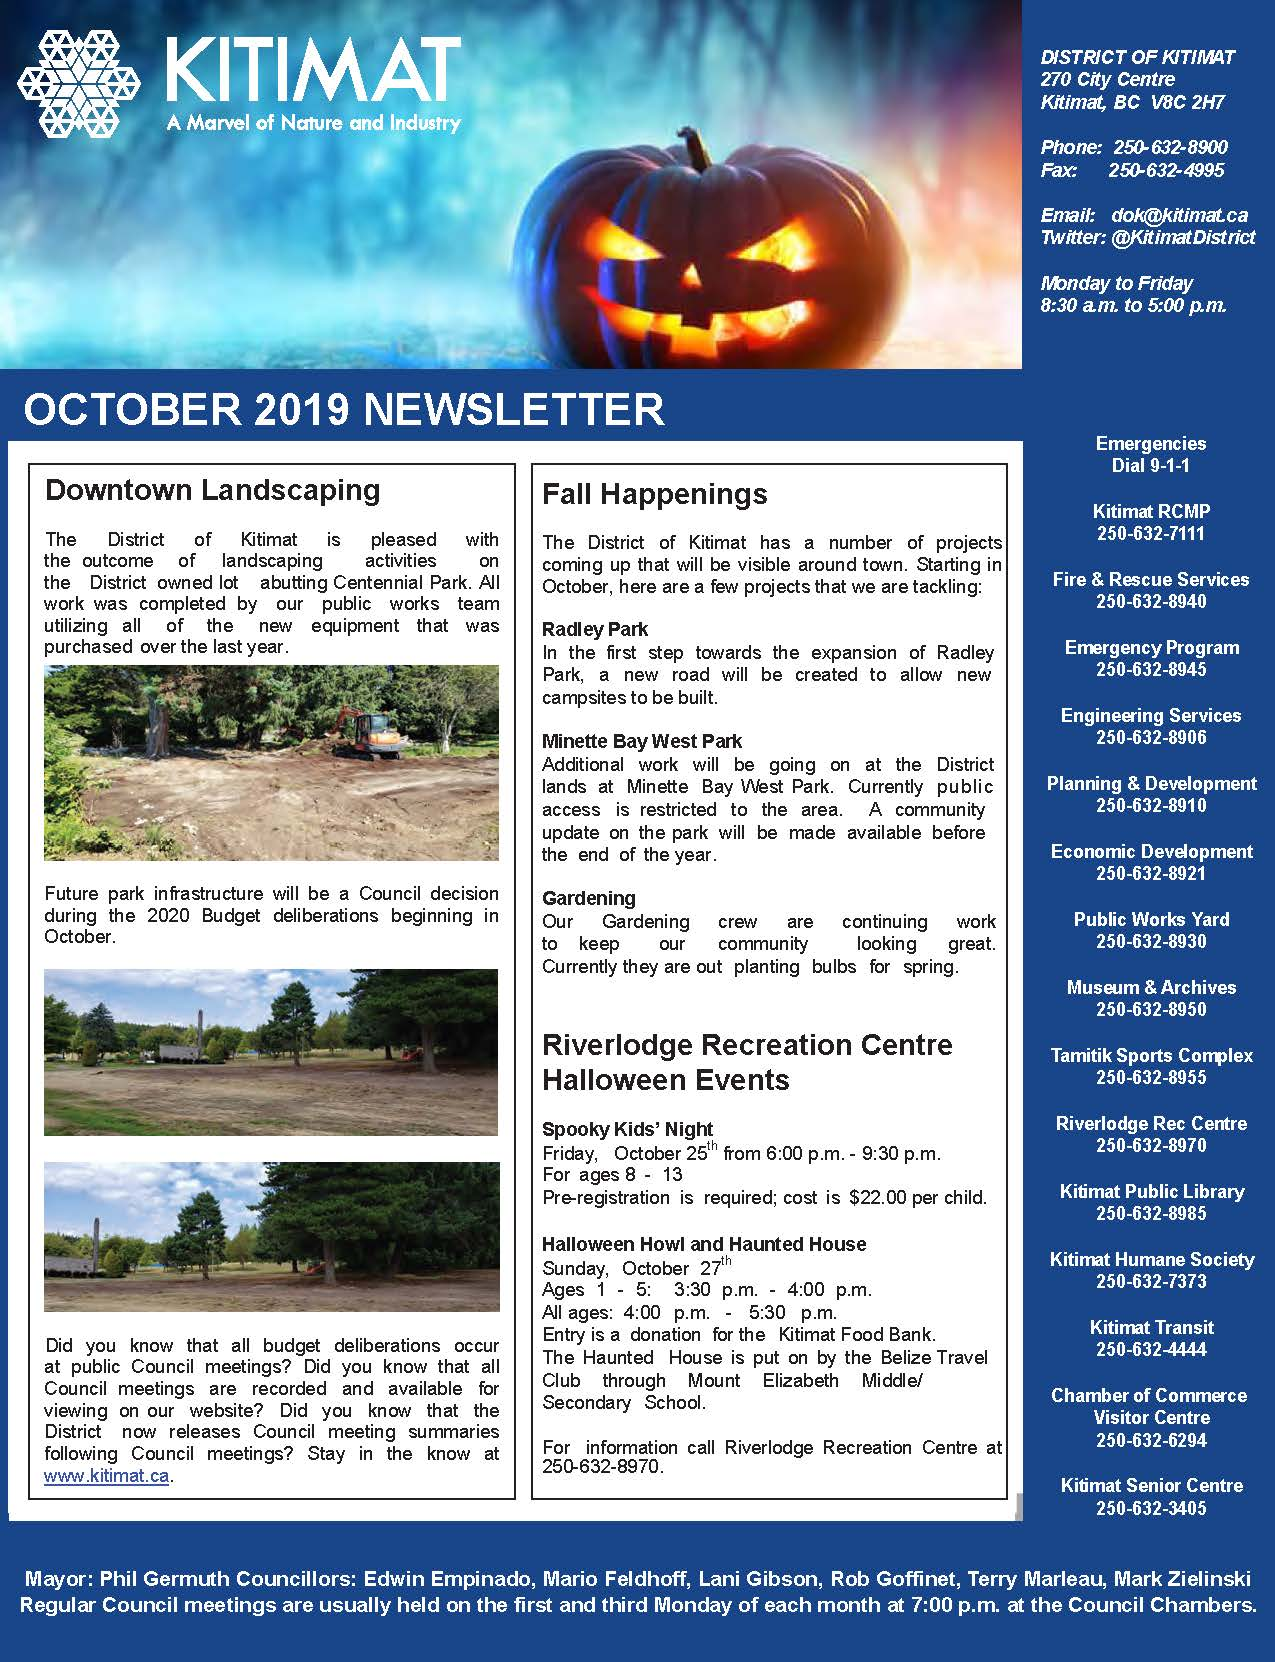 October 2019 District of Kitimat Newsletter, Page 1 of 2